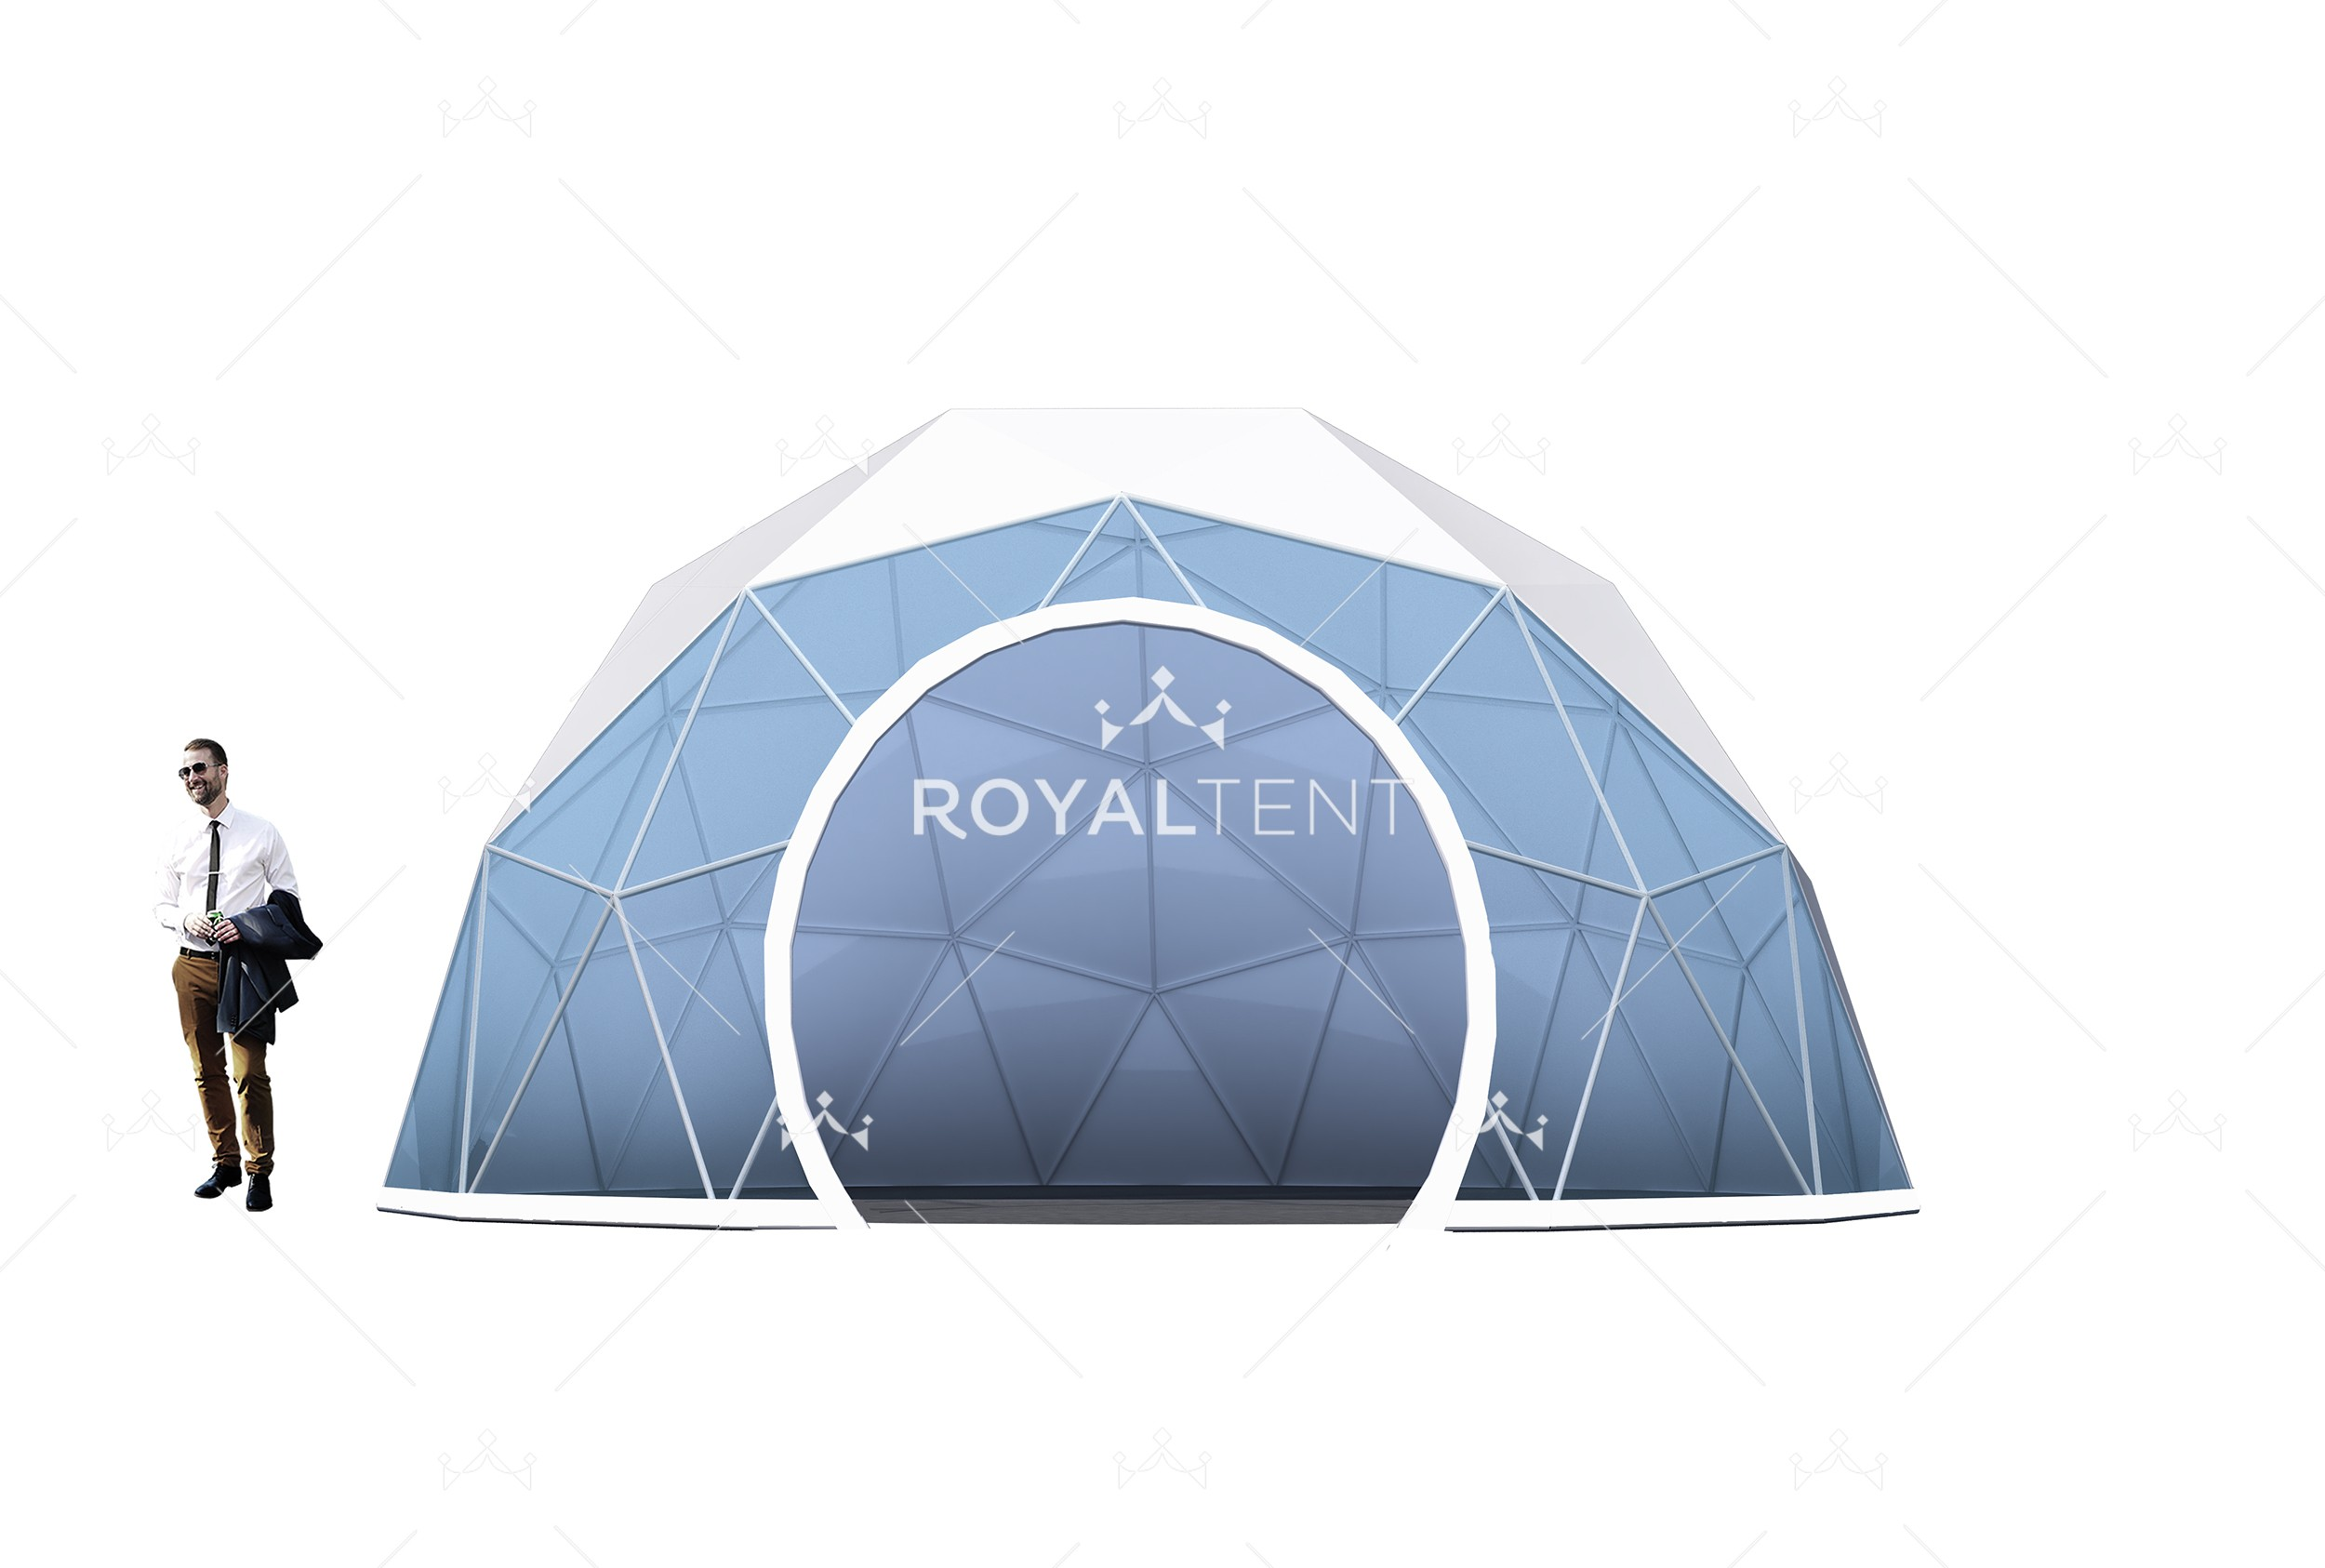 https://royaltent.me/houses_images/tent1_2_200111094936.jpg